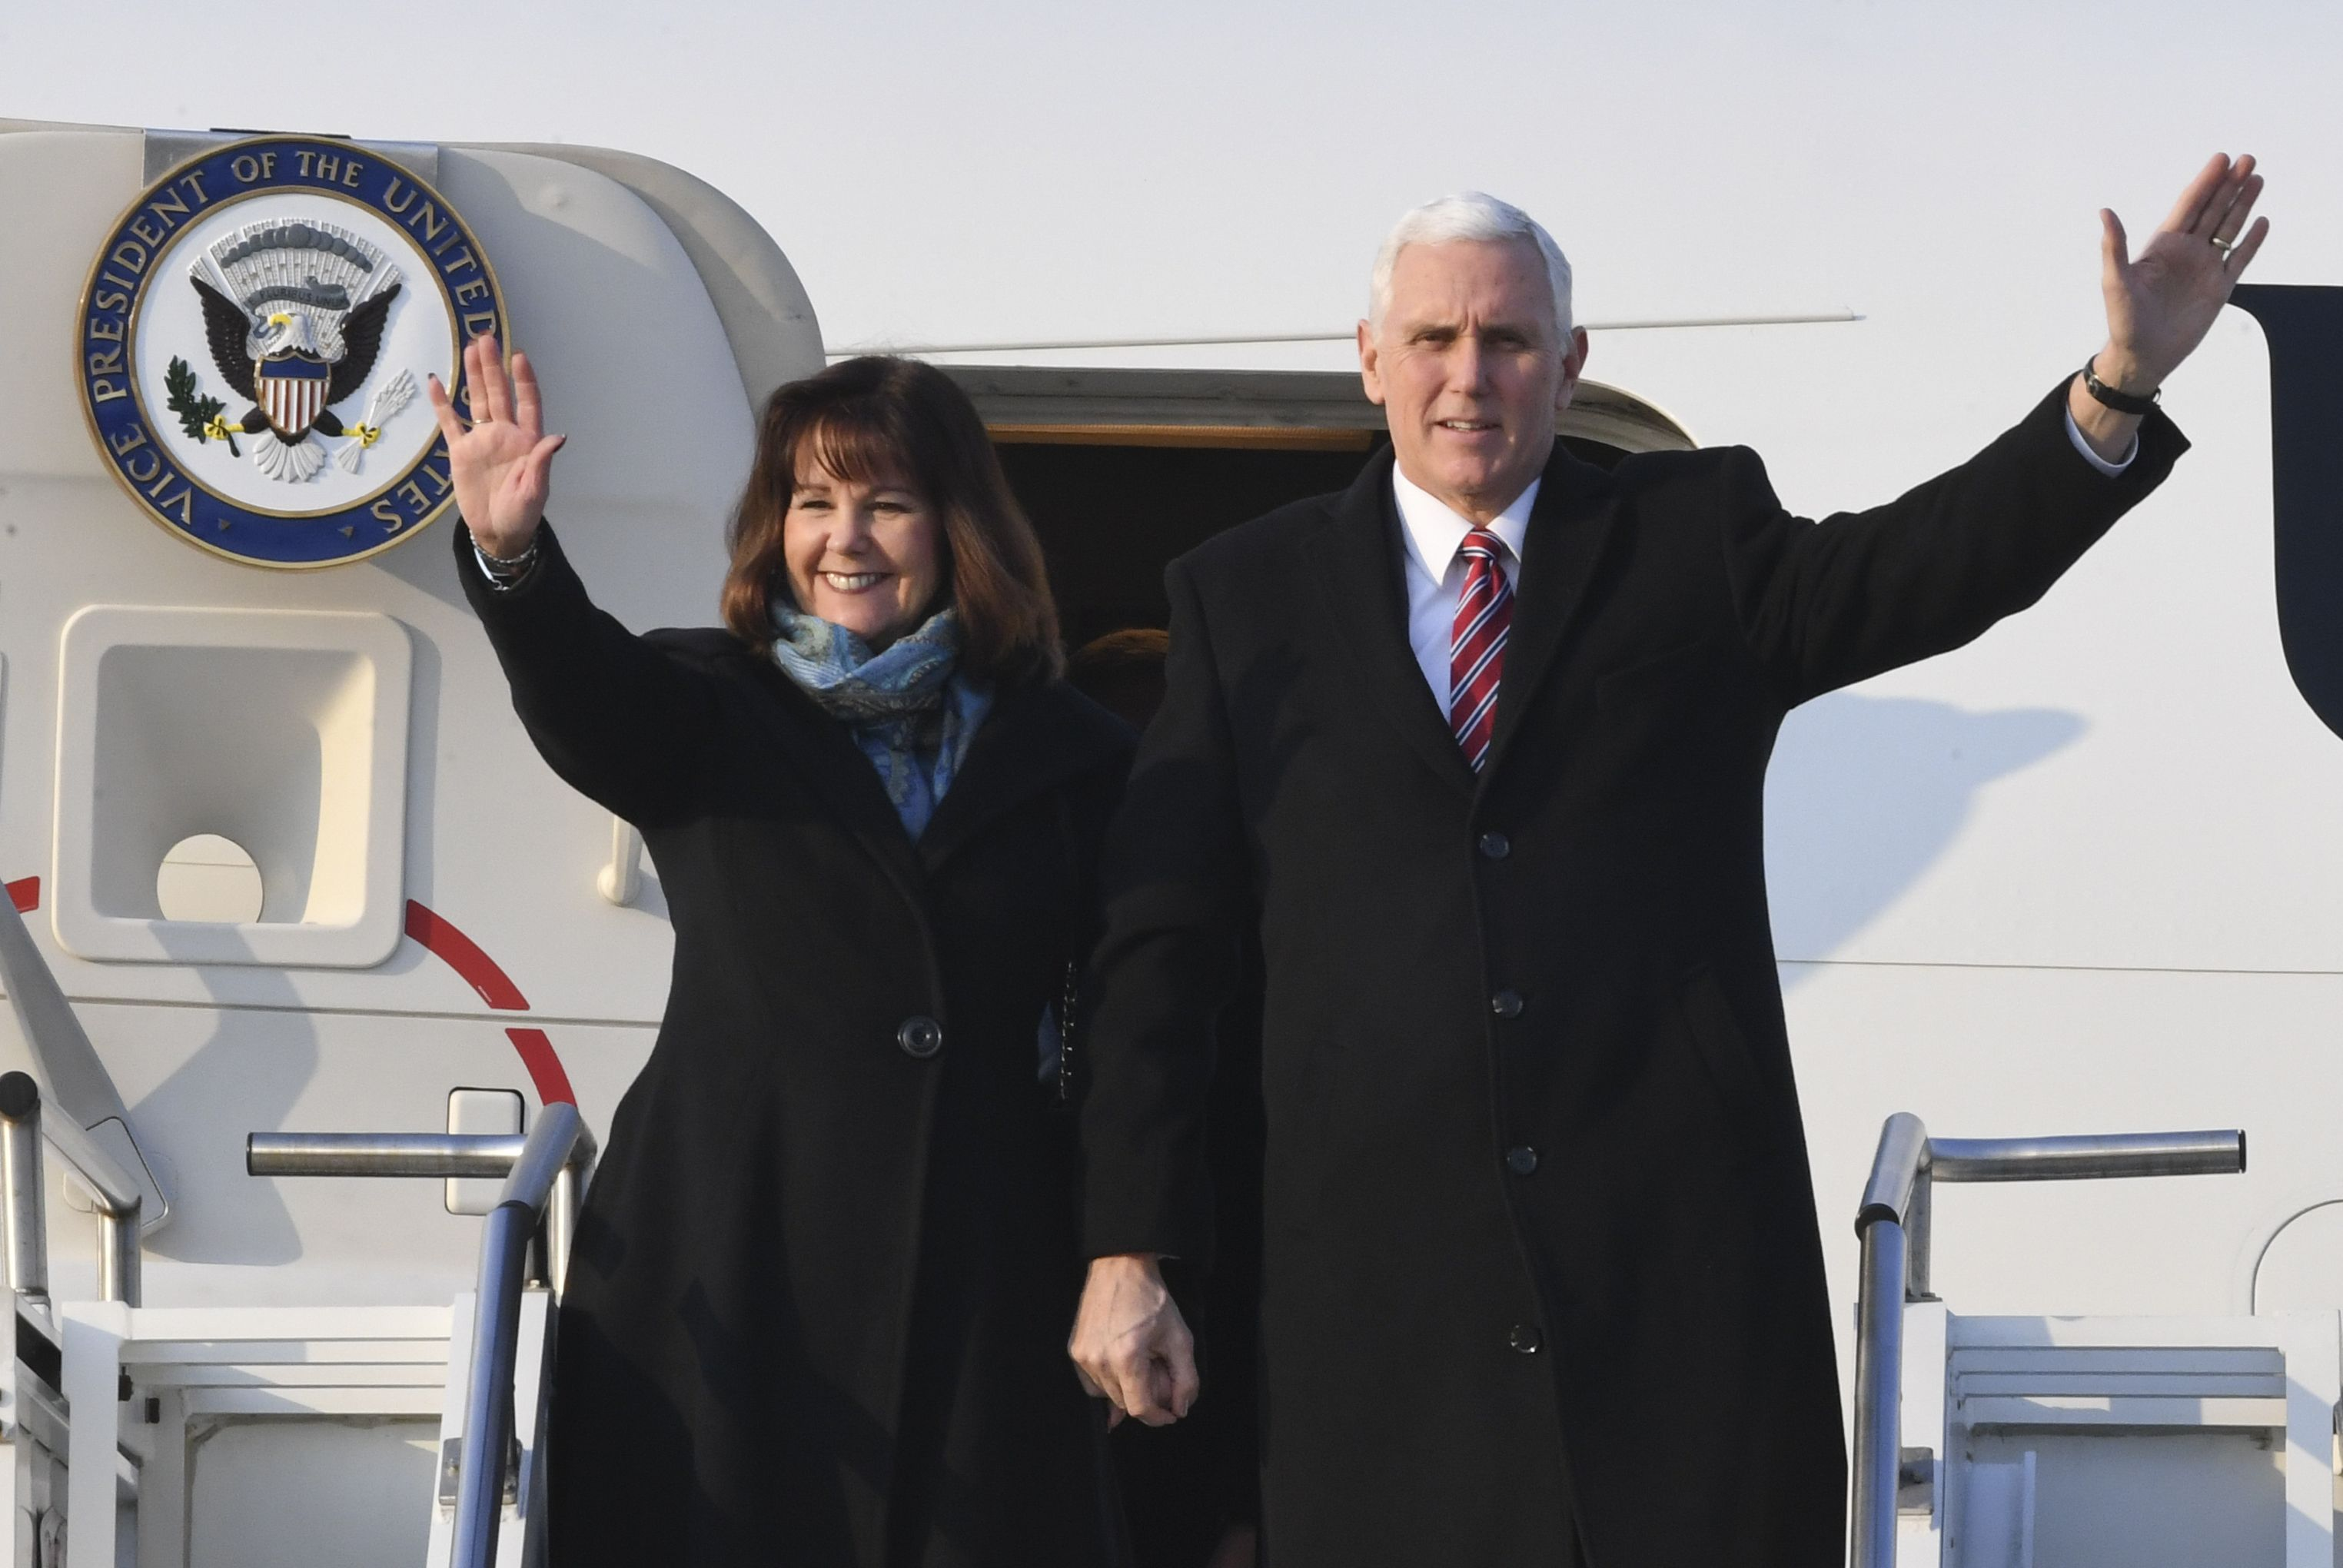 Karen and Mike Pence represent the U.S. at the Olympics in South Korea.